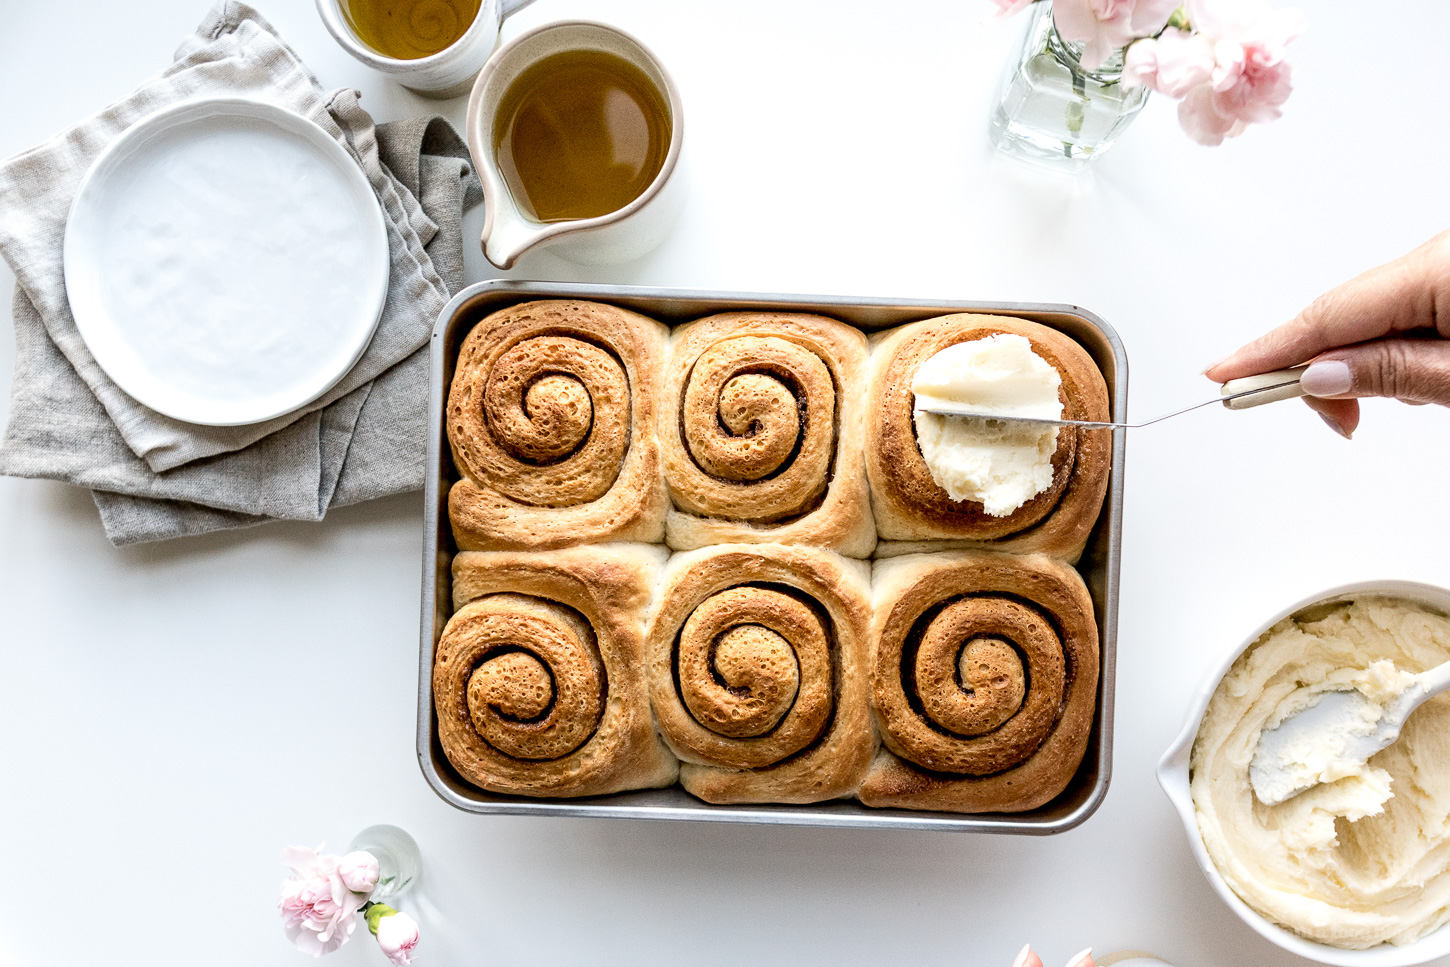 Easy 6 Ingredient Cinnamon Buns Recipe - www.iamafoodblog.com